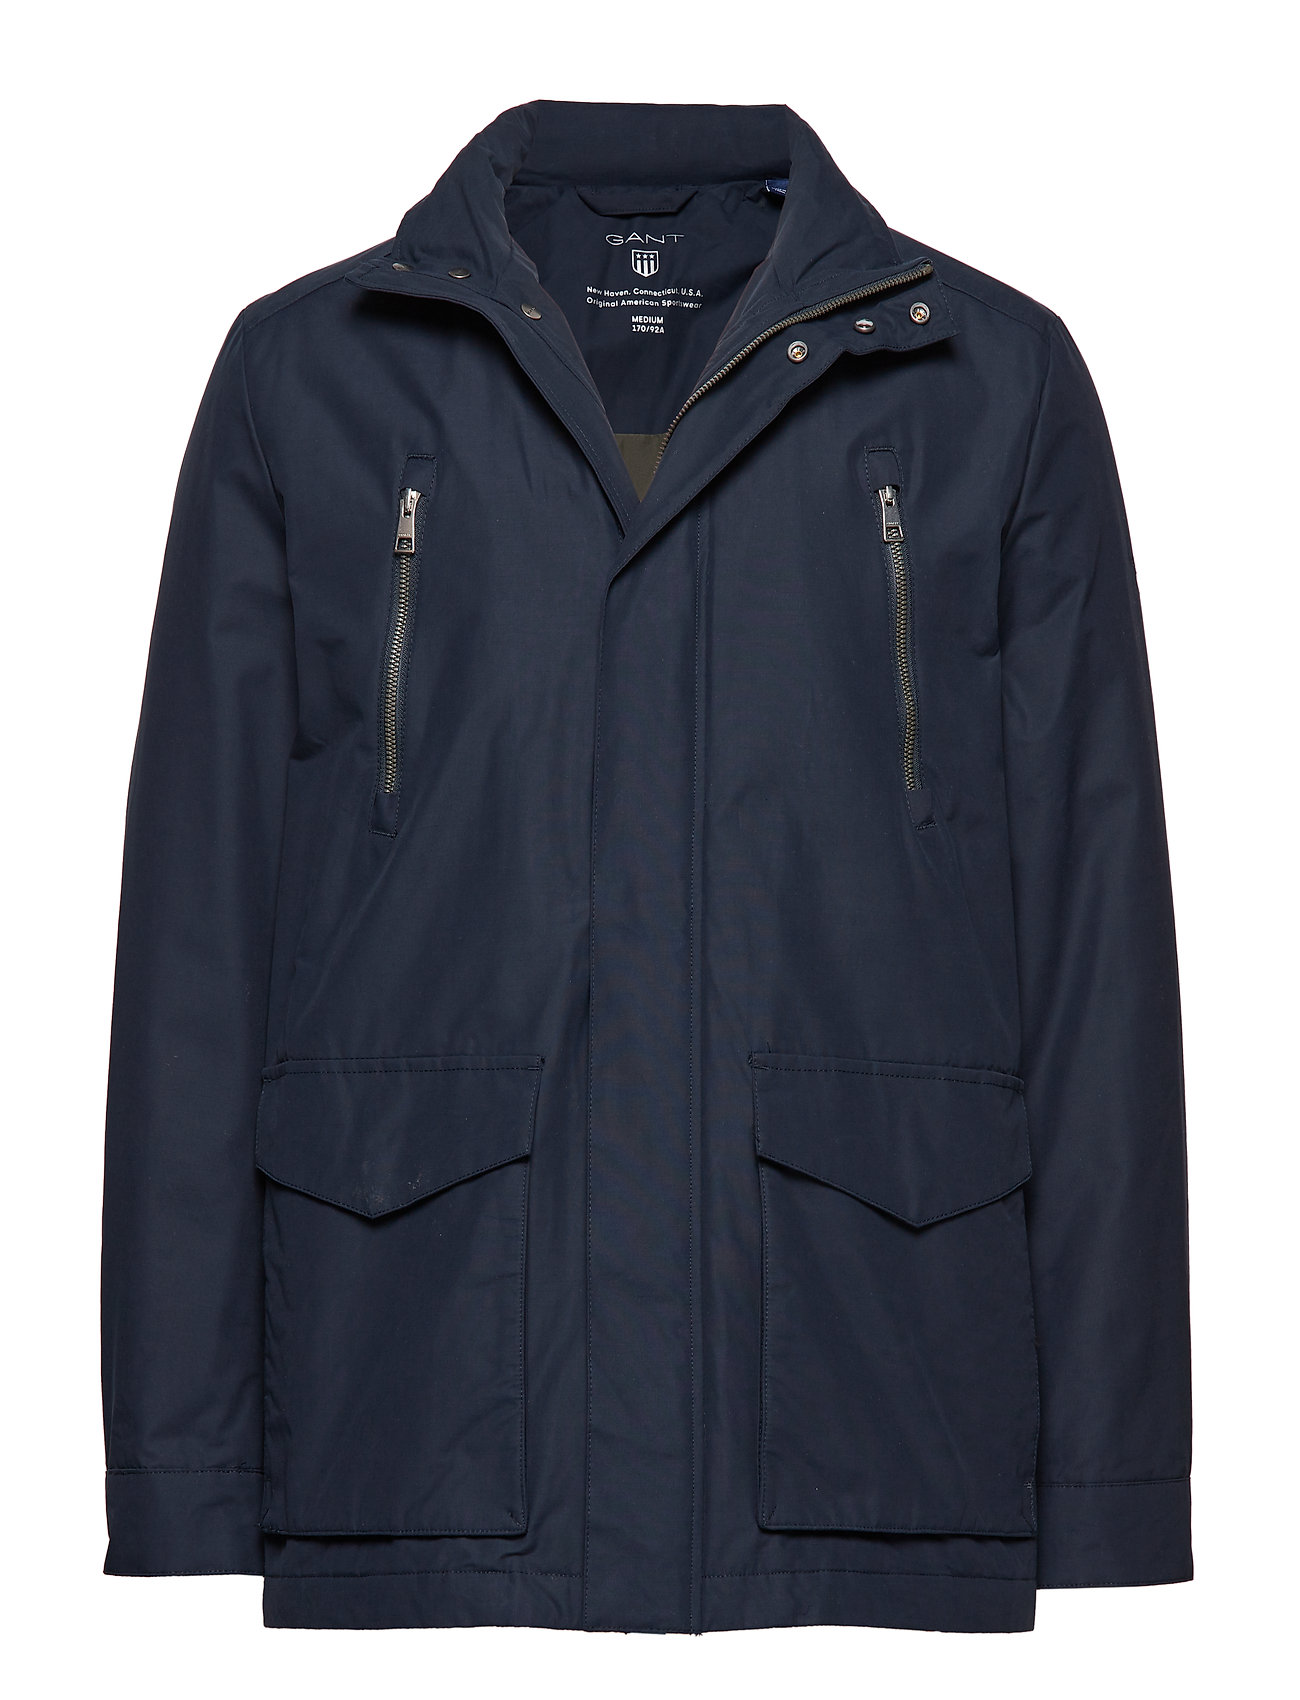 GANT O1. THE AVENUE JACKET - NAVY